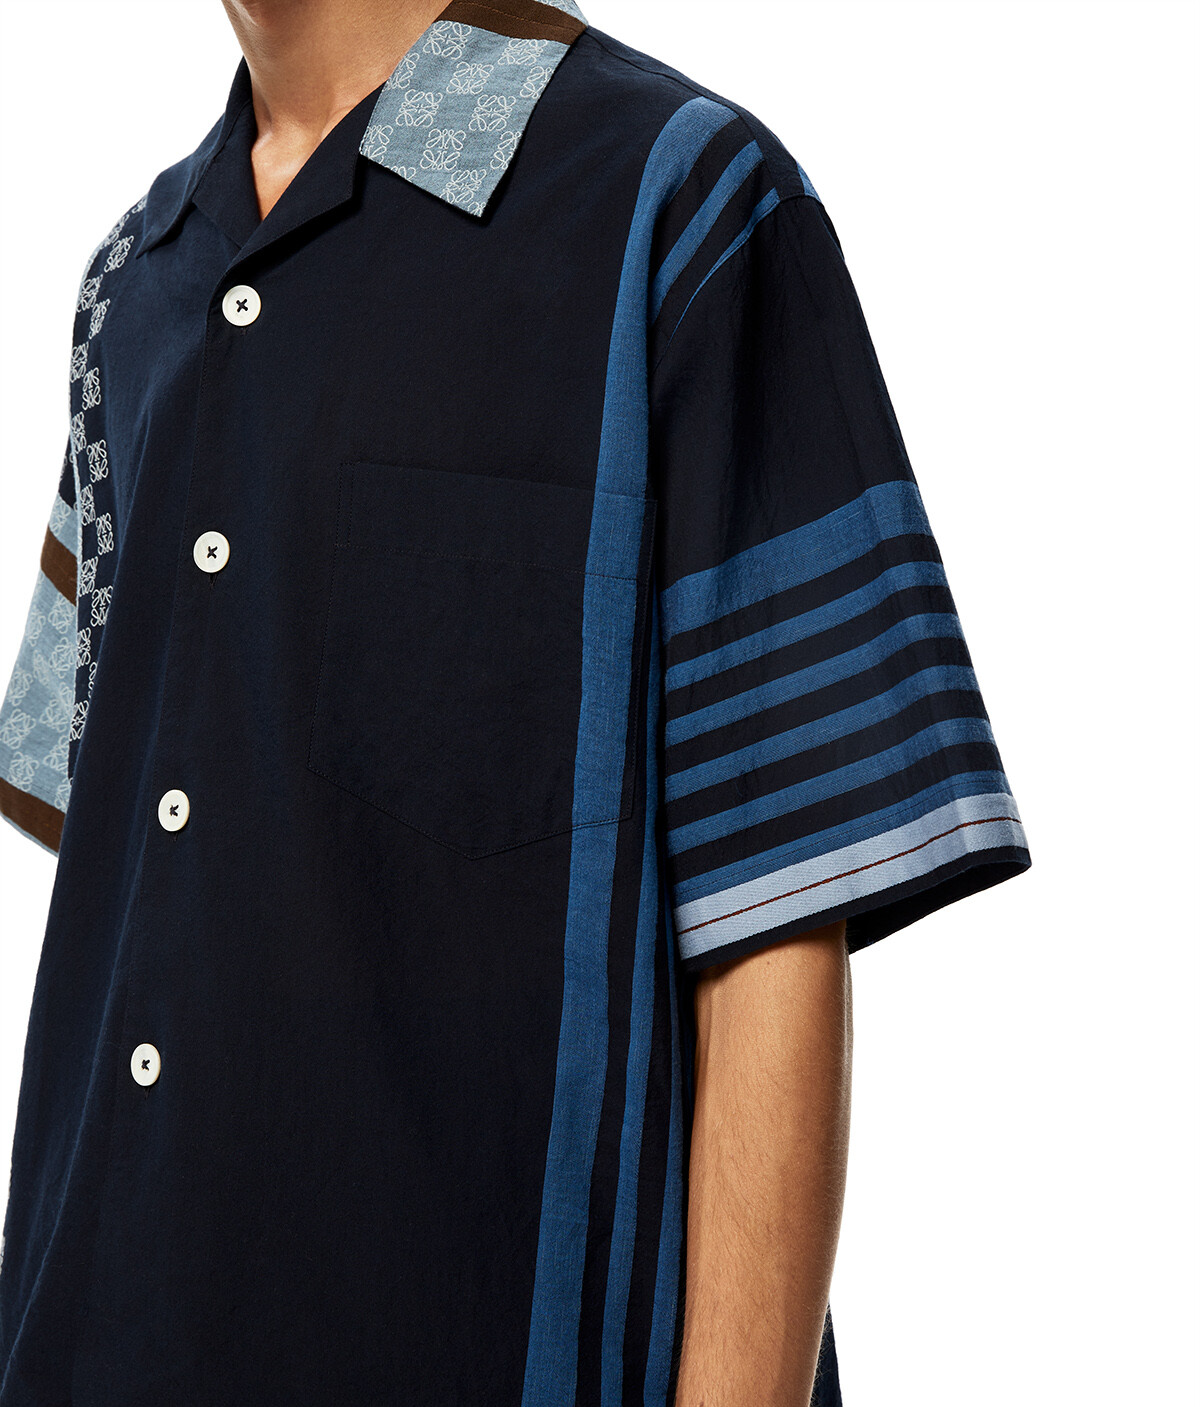 LOEWE Stripe Anagram Bowling Shirt Navy Blue/Multicolor front